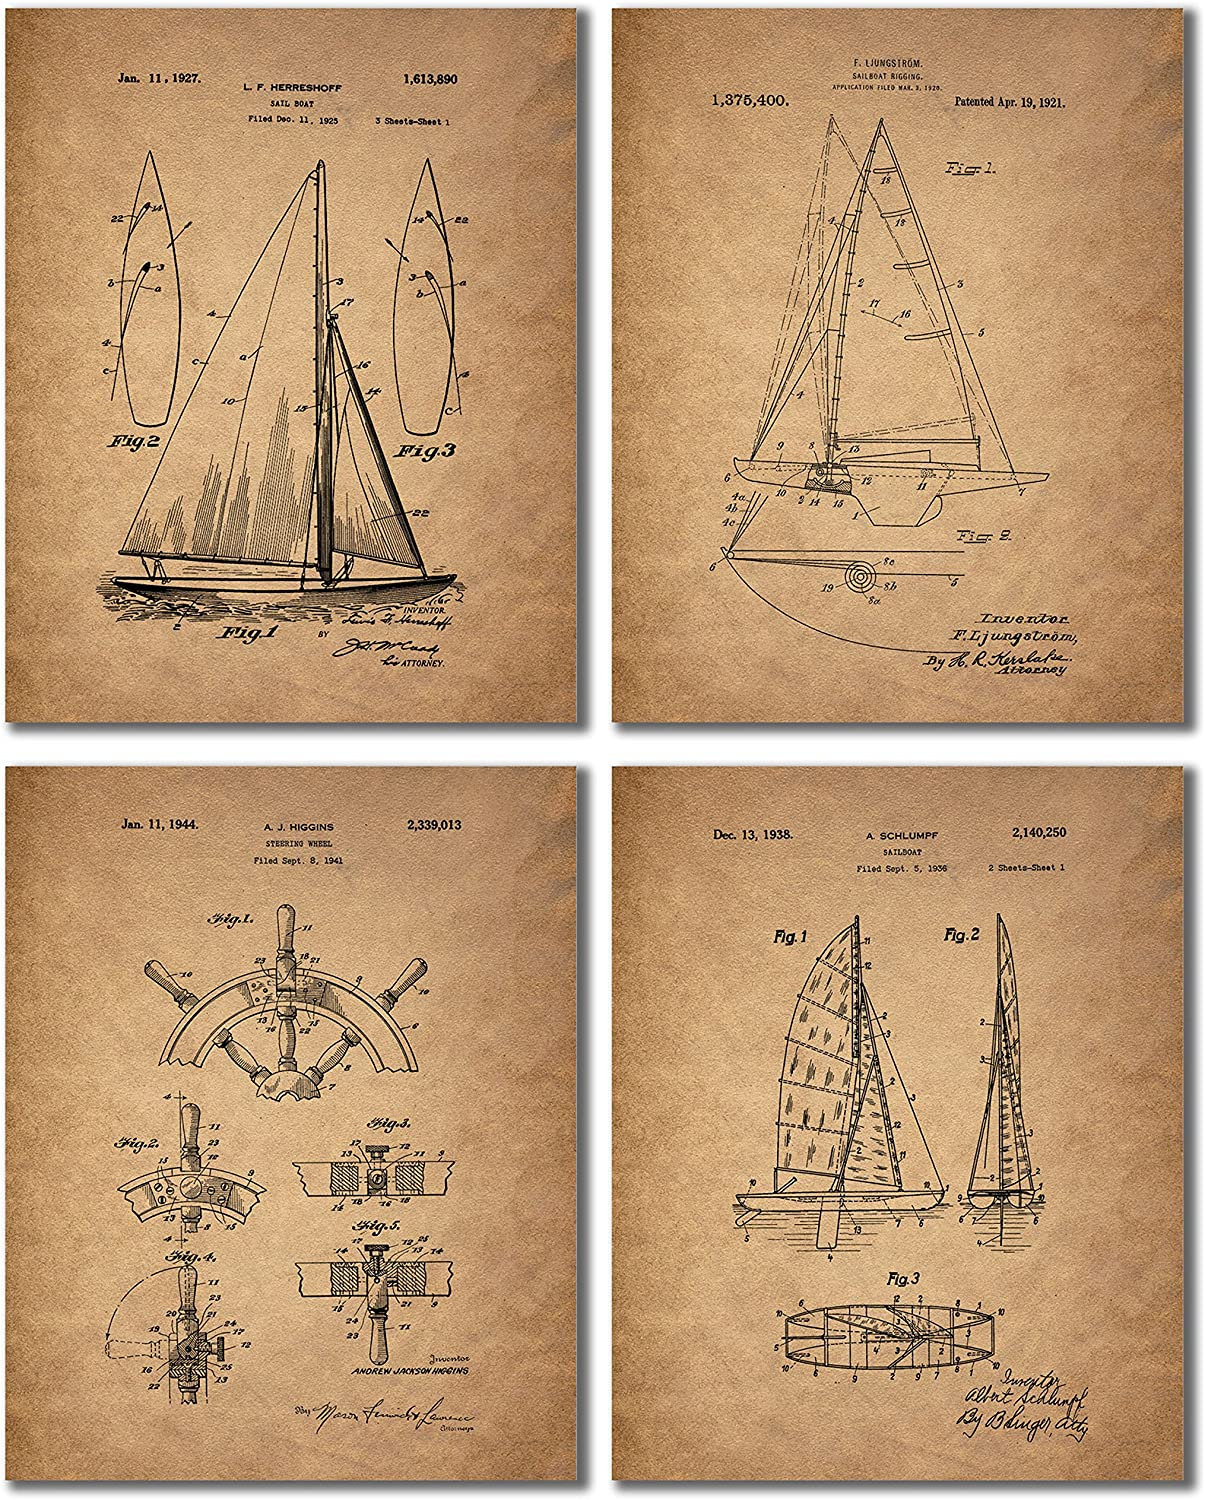 Sailing Patent Prints - Set of 4 Vintage Sailboat Wall Art Decor Photos